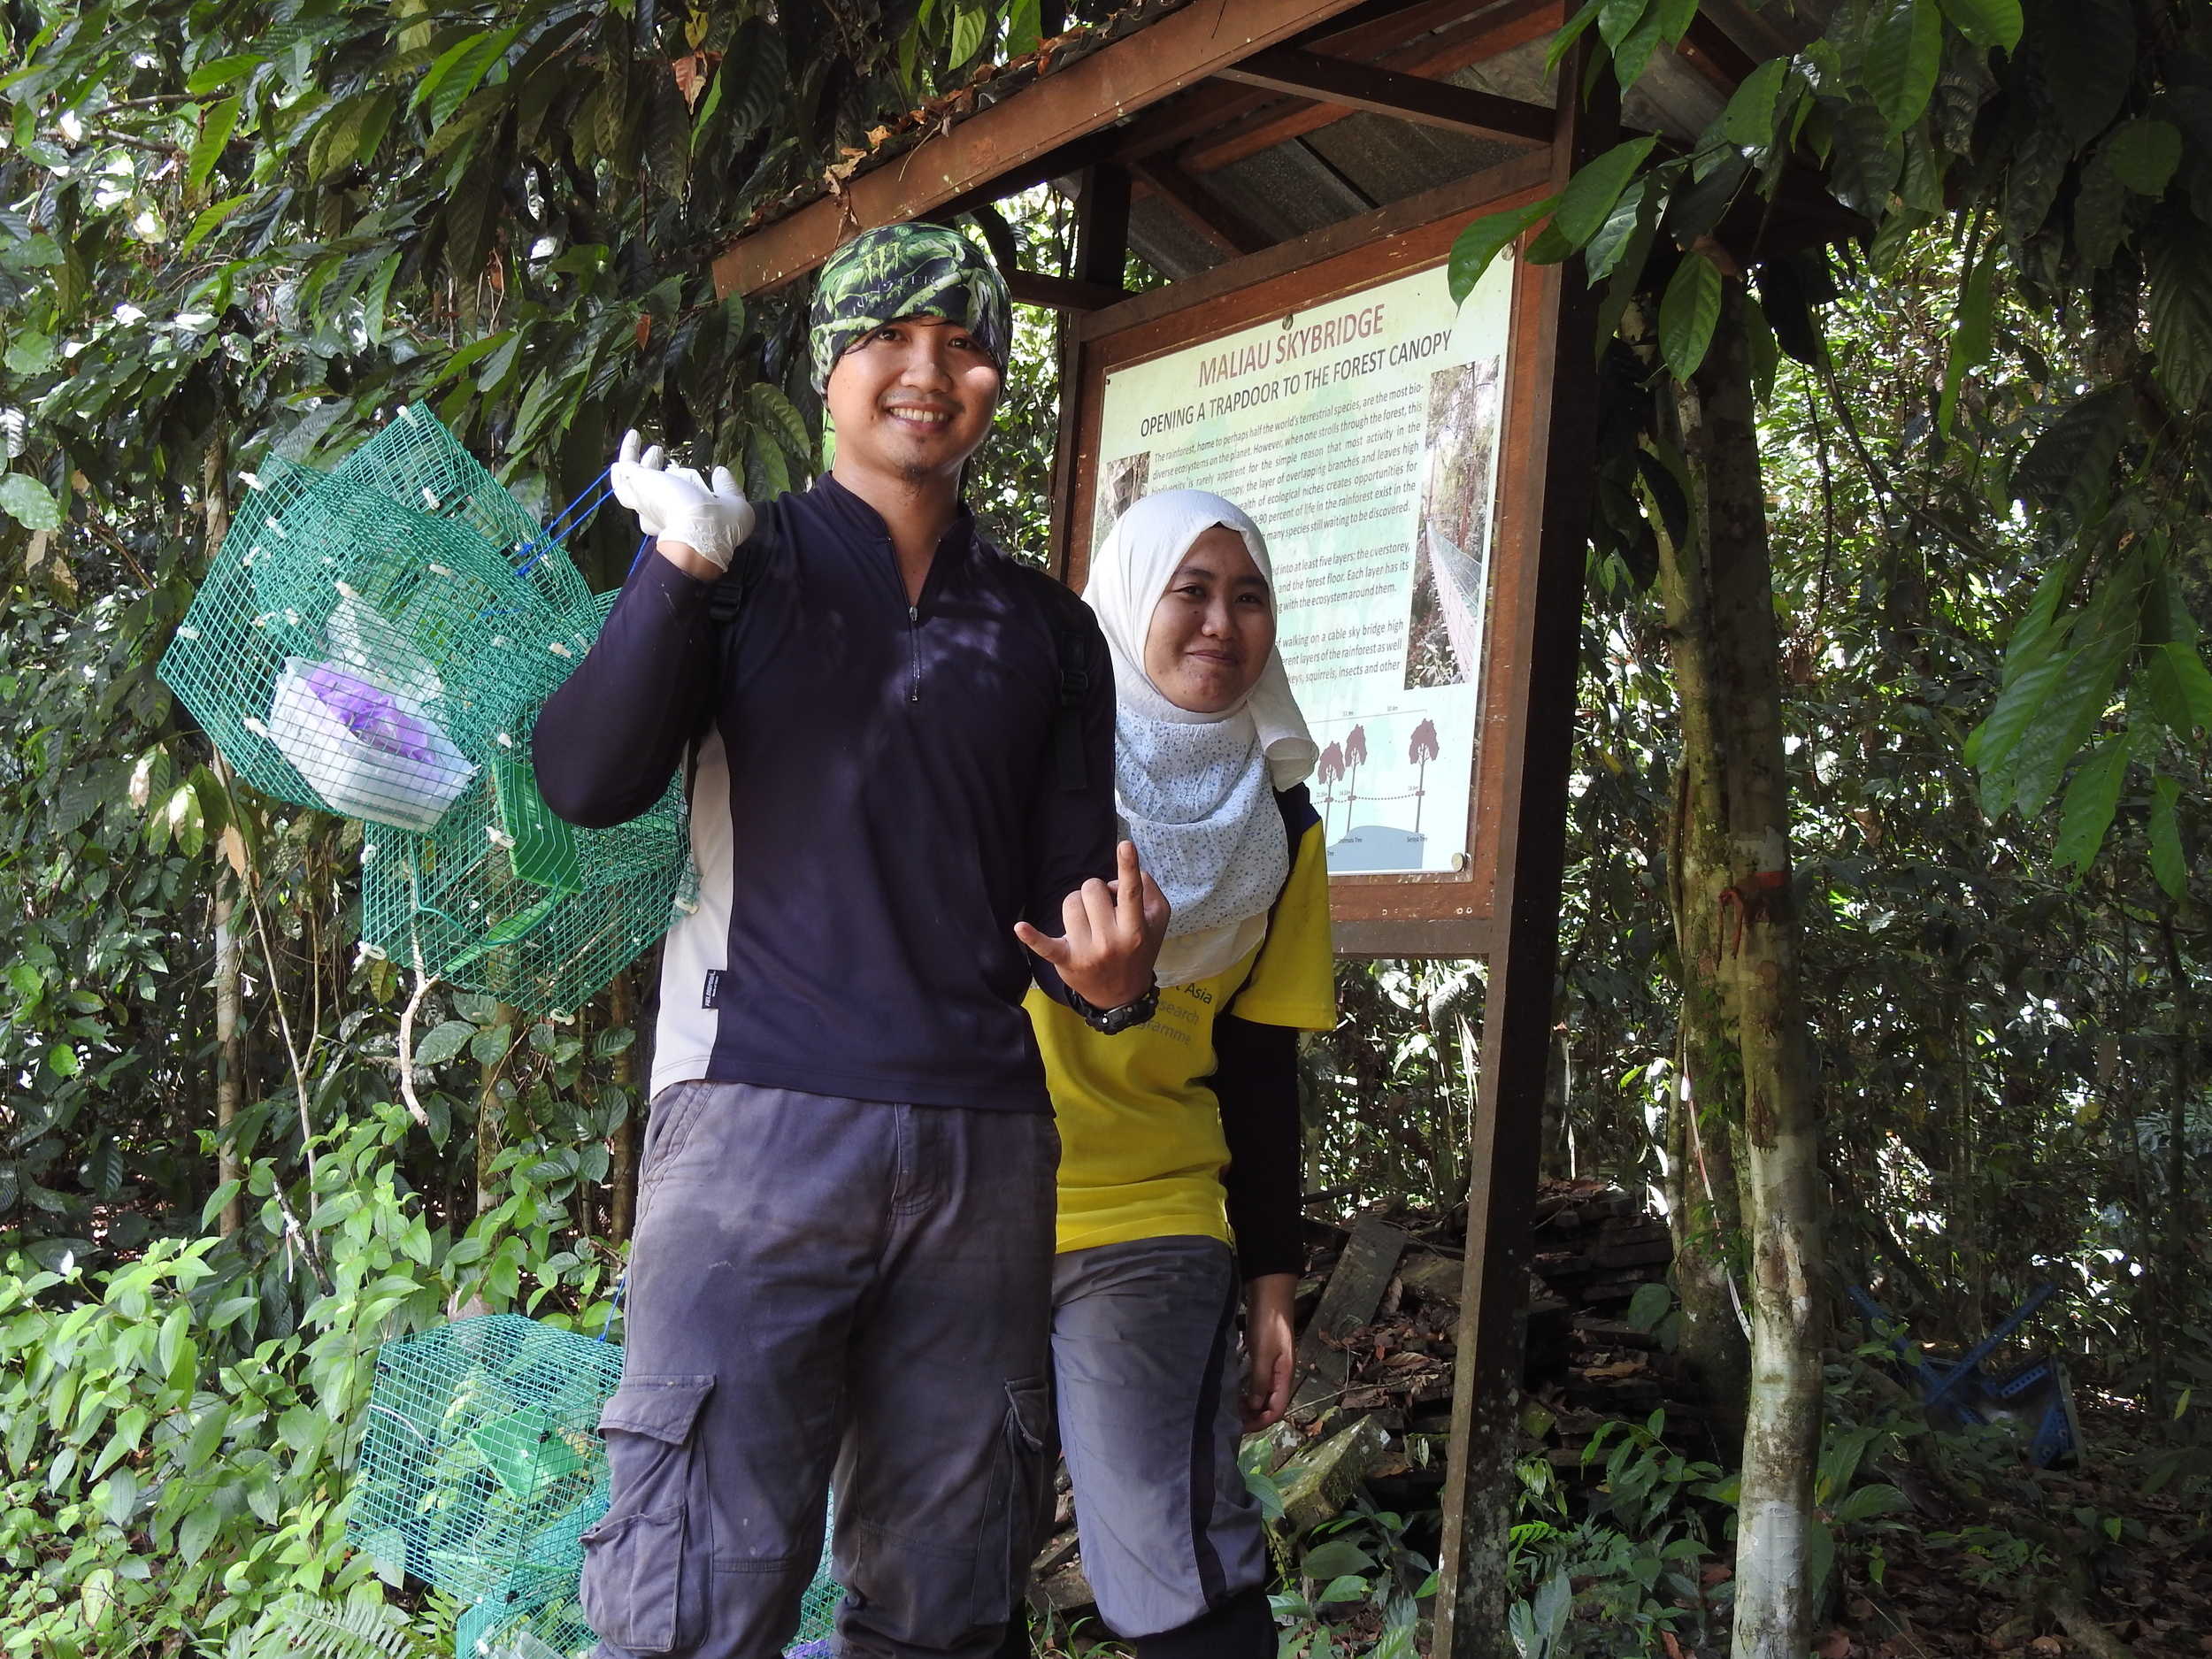 Ali and Mira collecting exclusion cages from the field